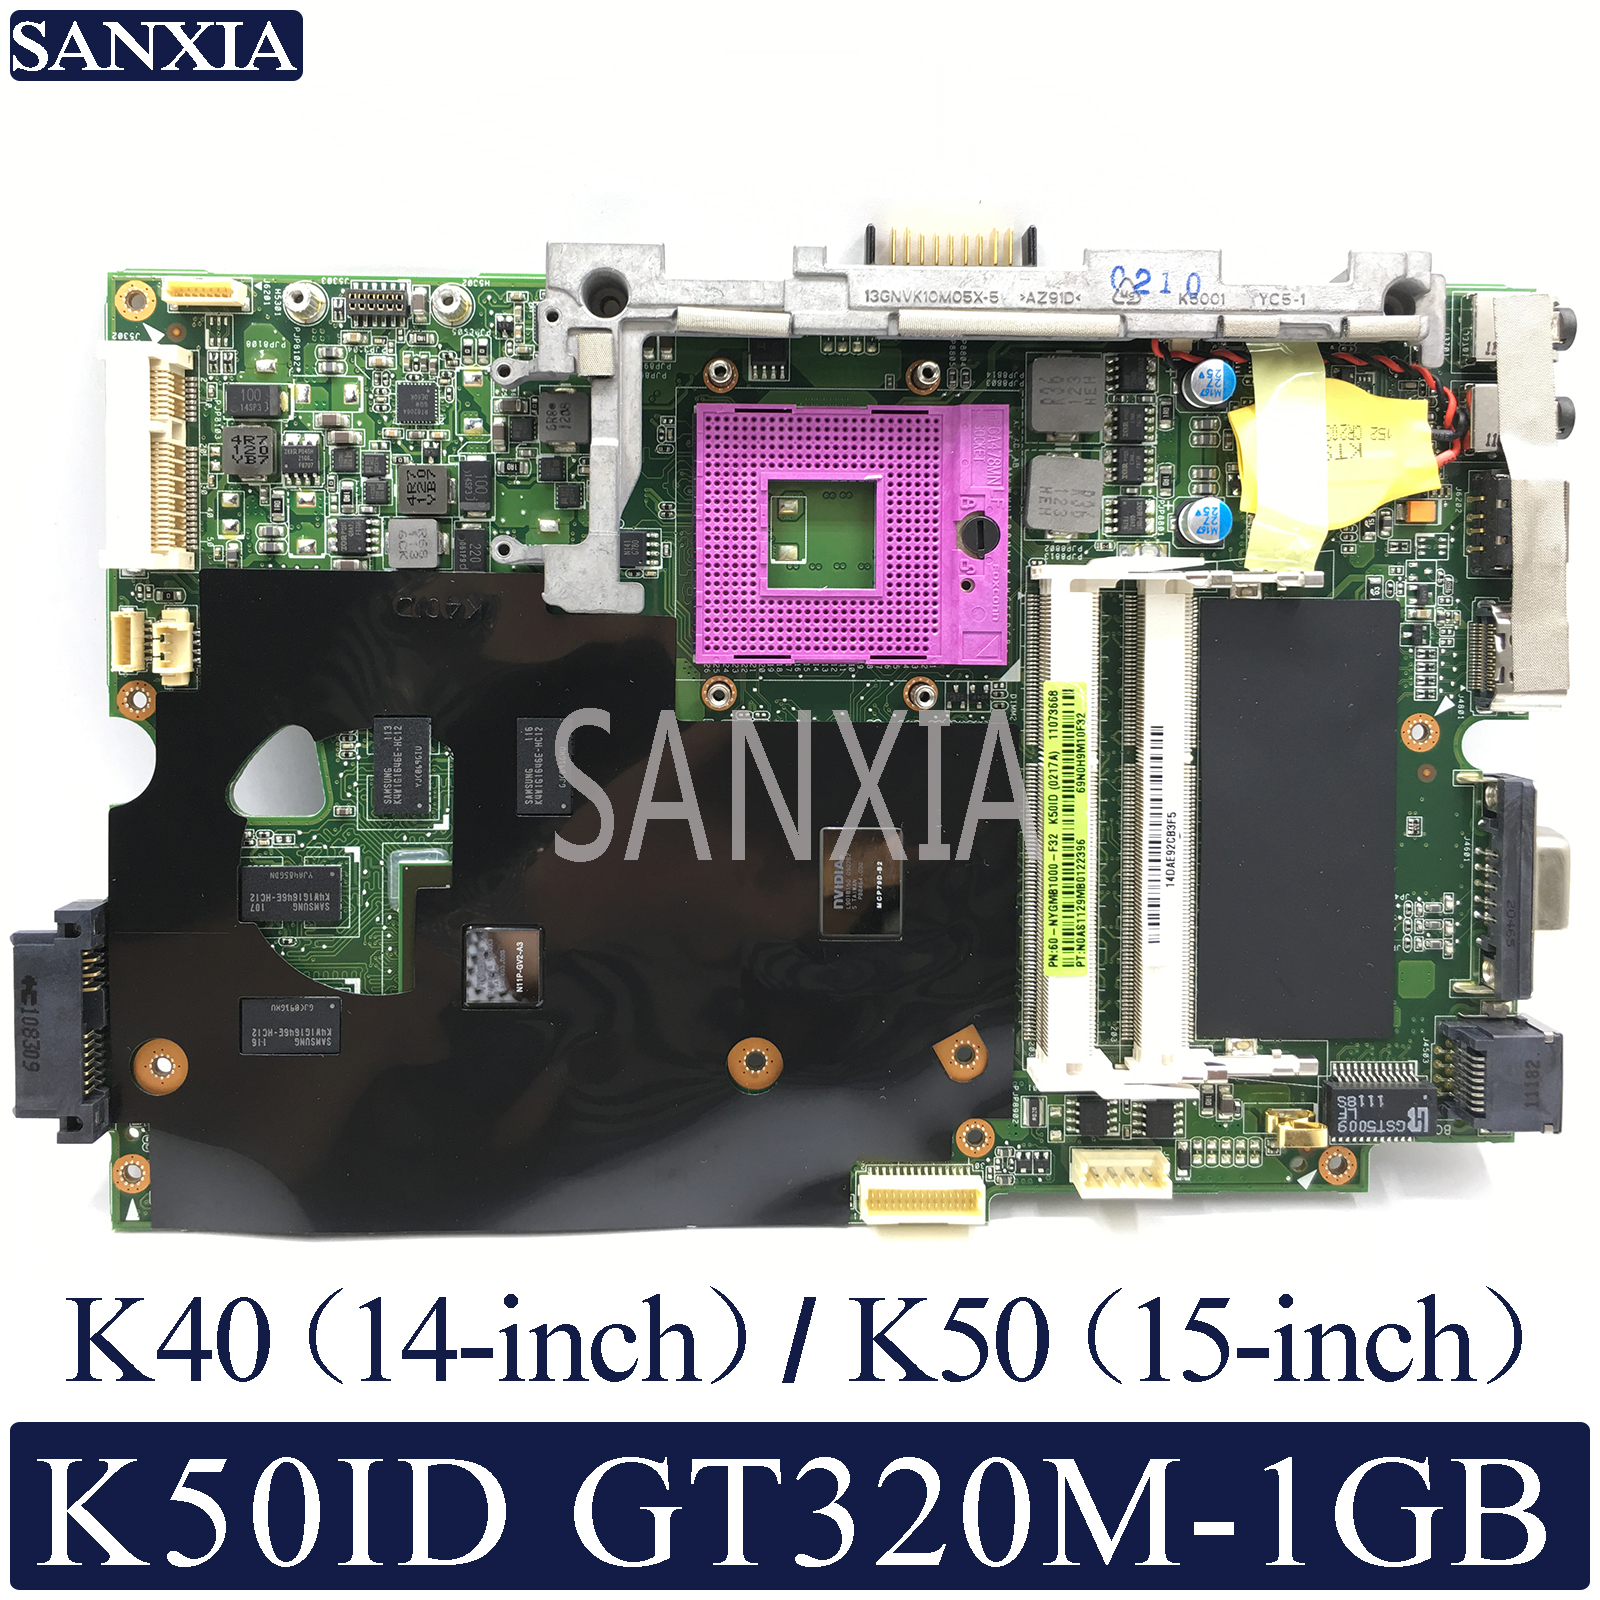 KEFU K40ID Laptop motherboard for ASUS K50ID K40IE K50IE original mainboard DDR3 RAM GT320M 1GB